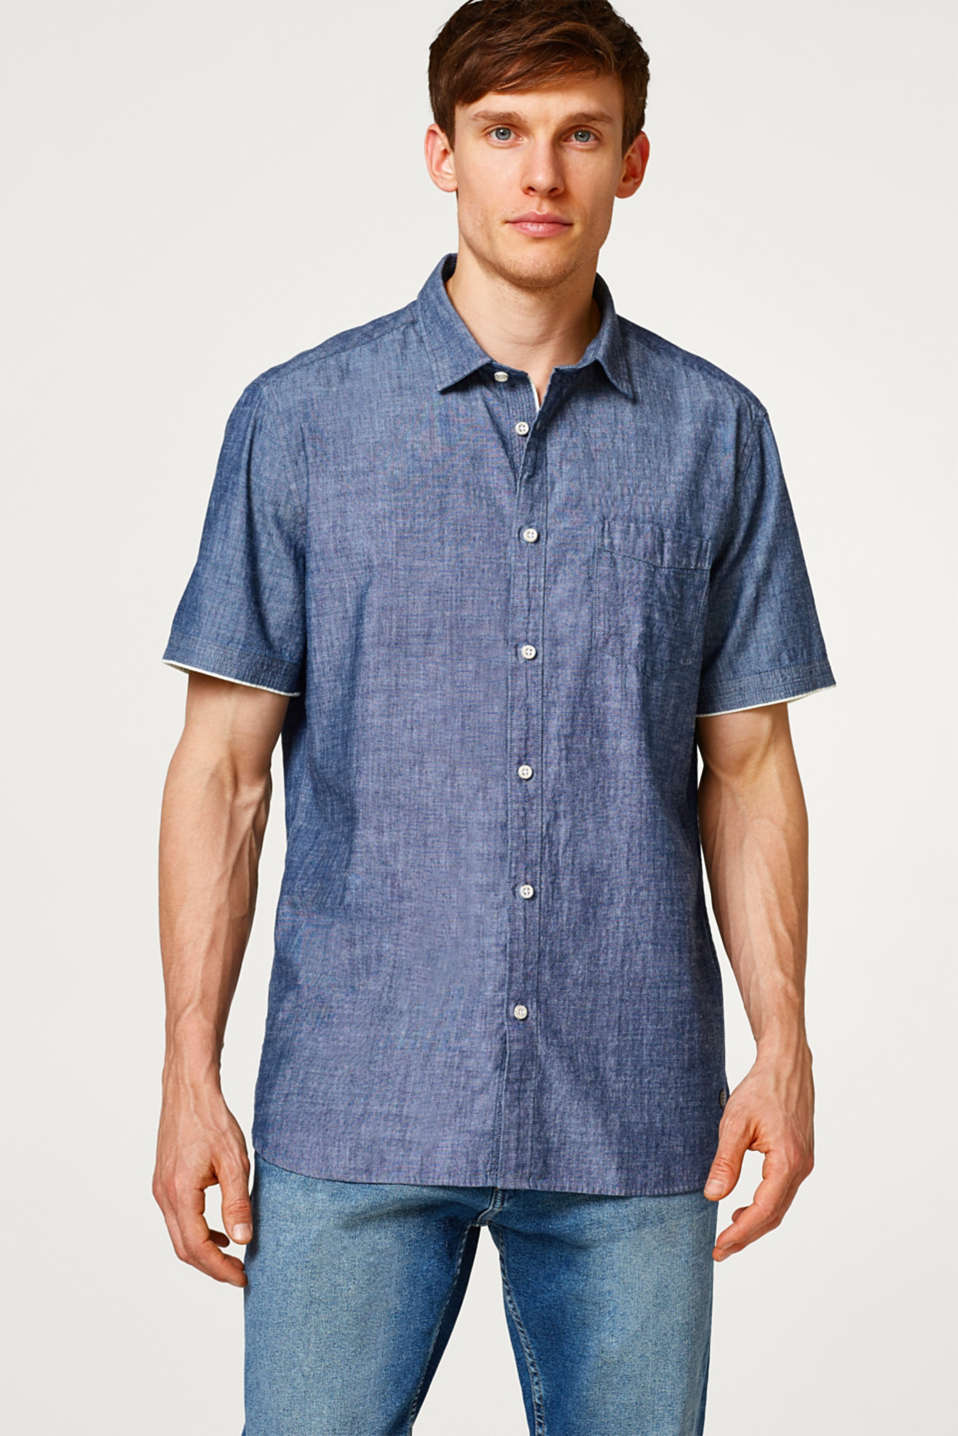 Esprit - Short sleeve shirt made of cotton chambray